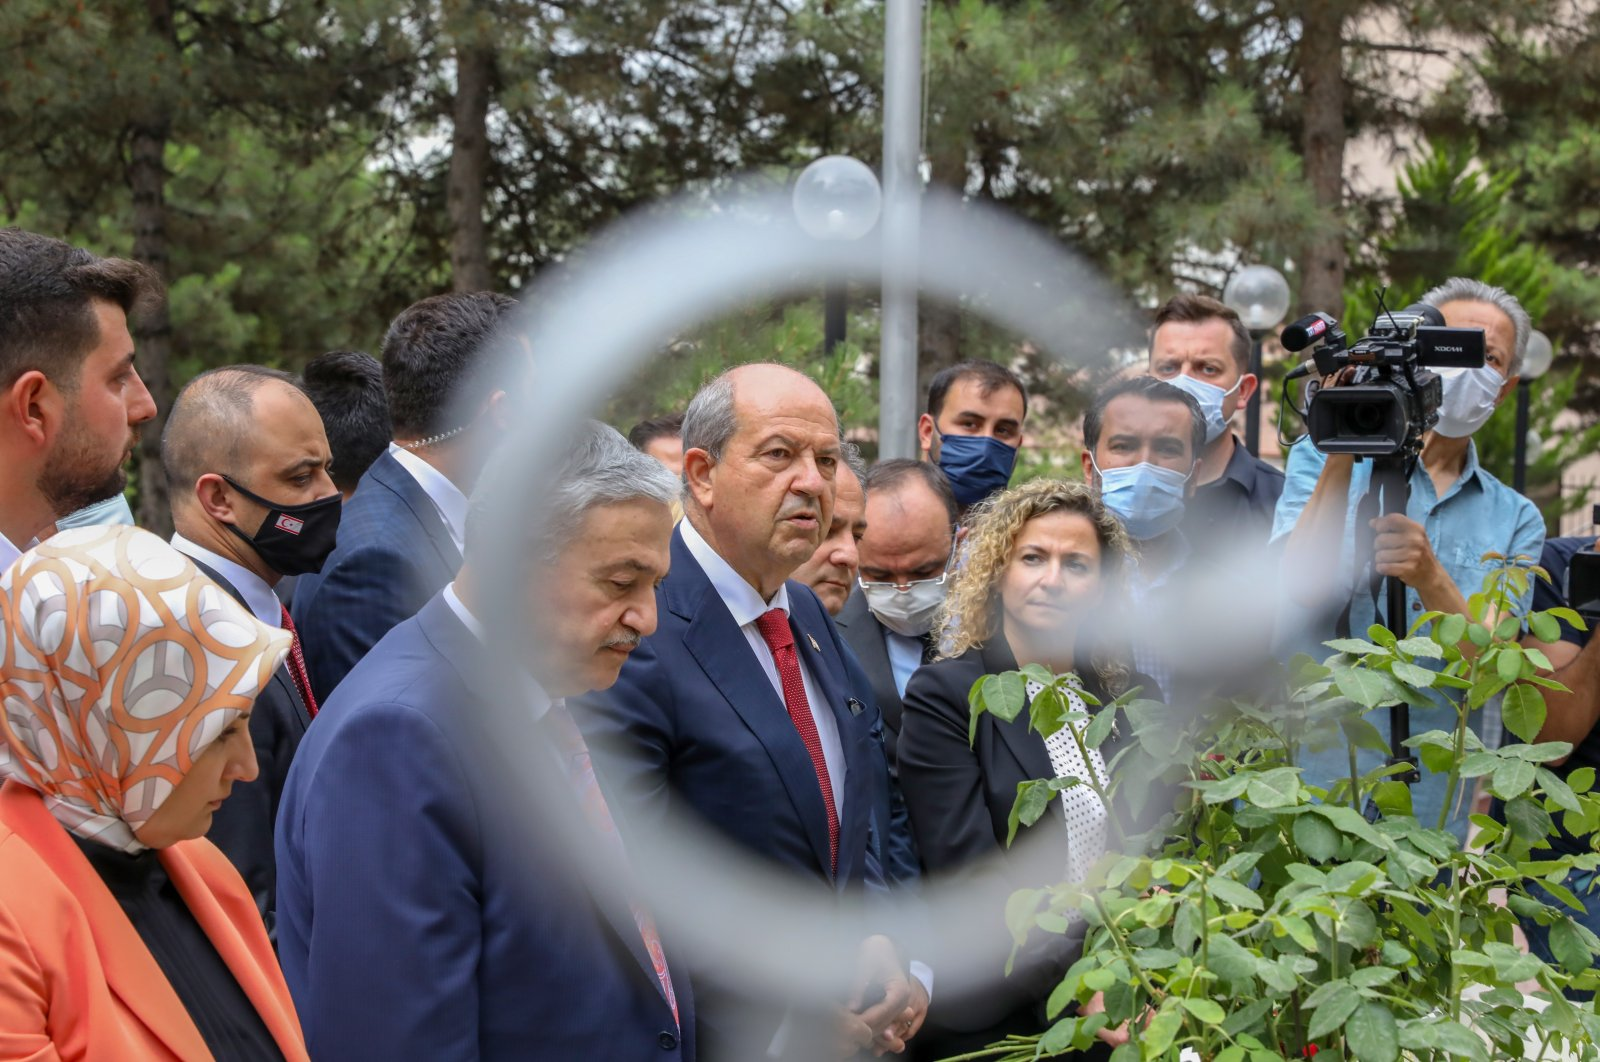 Turkish Republic of Northern Cyprus (TRNC) President Ersin Tatar is in Elazığ province to make an official visit and visit the tomb of martyrs killed by Greek Cypriot gangs in 1963, July 4, 2021 (AA Photo)